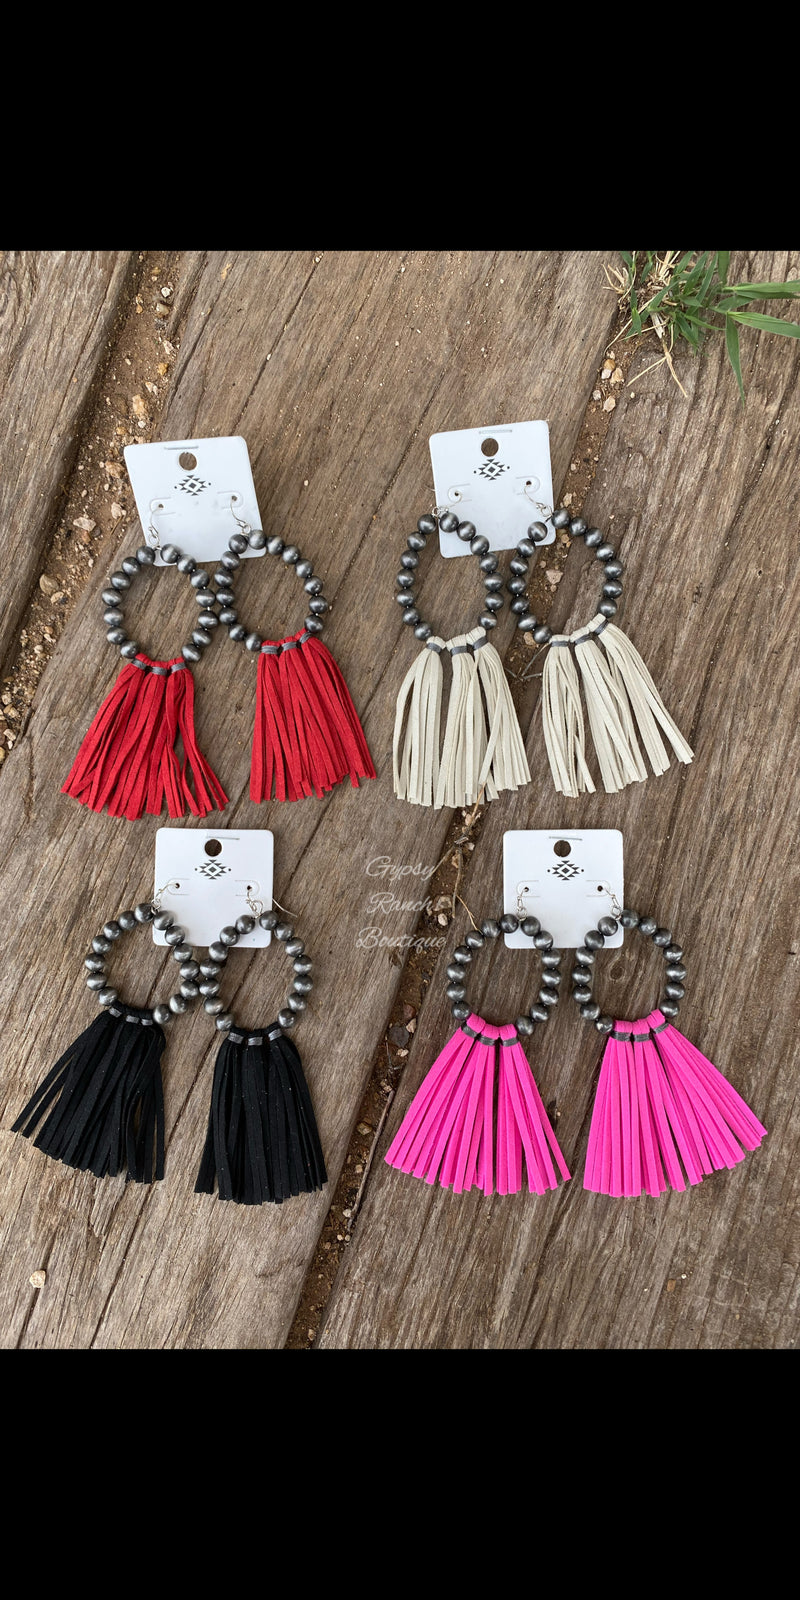 No Limit Fringe Earrings